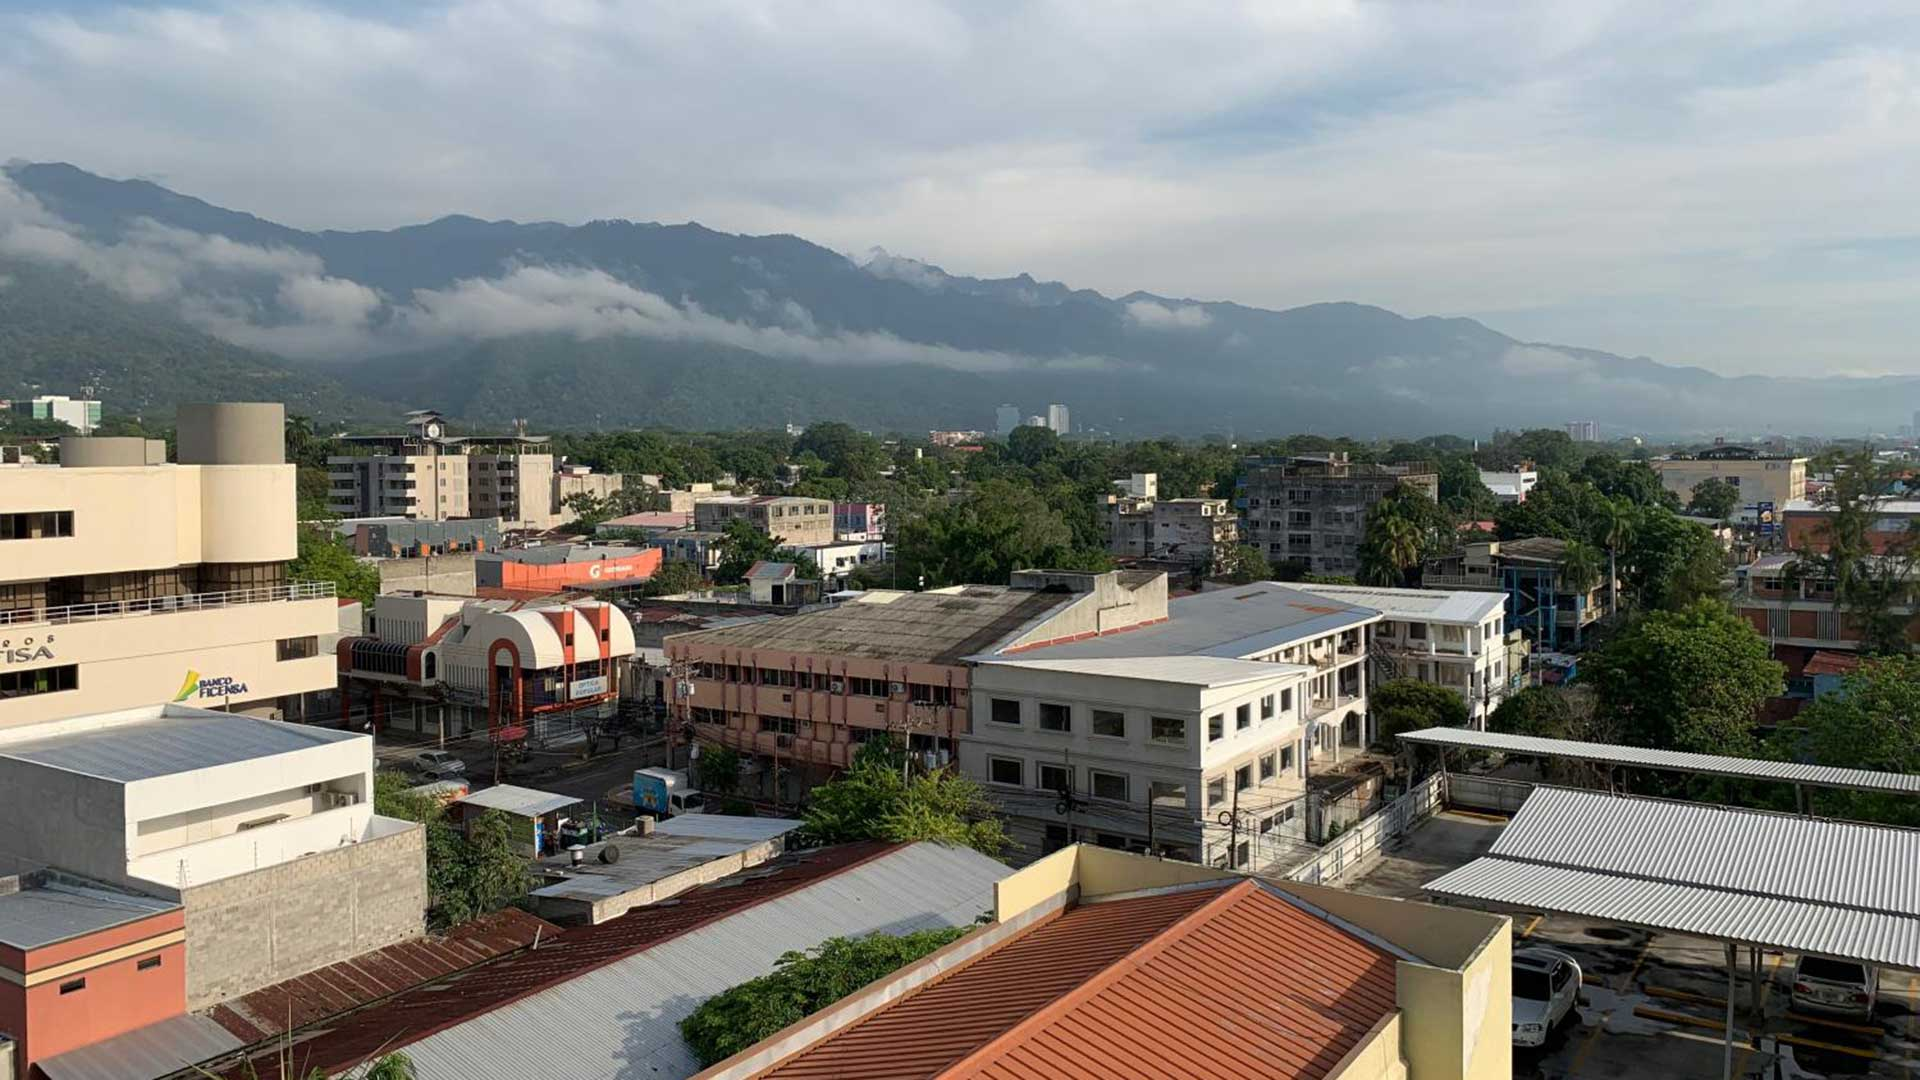 San Pedro Sula has a population of 700,000, the second-most populous city in Honduras.